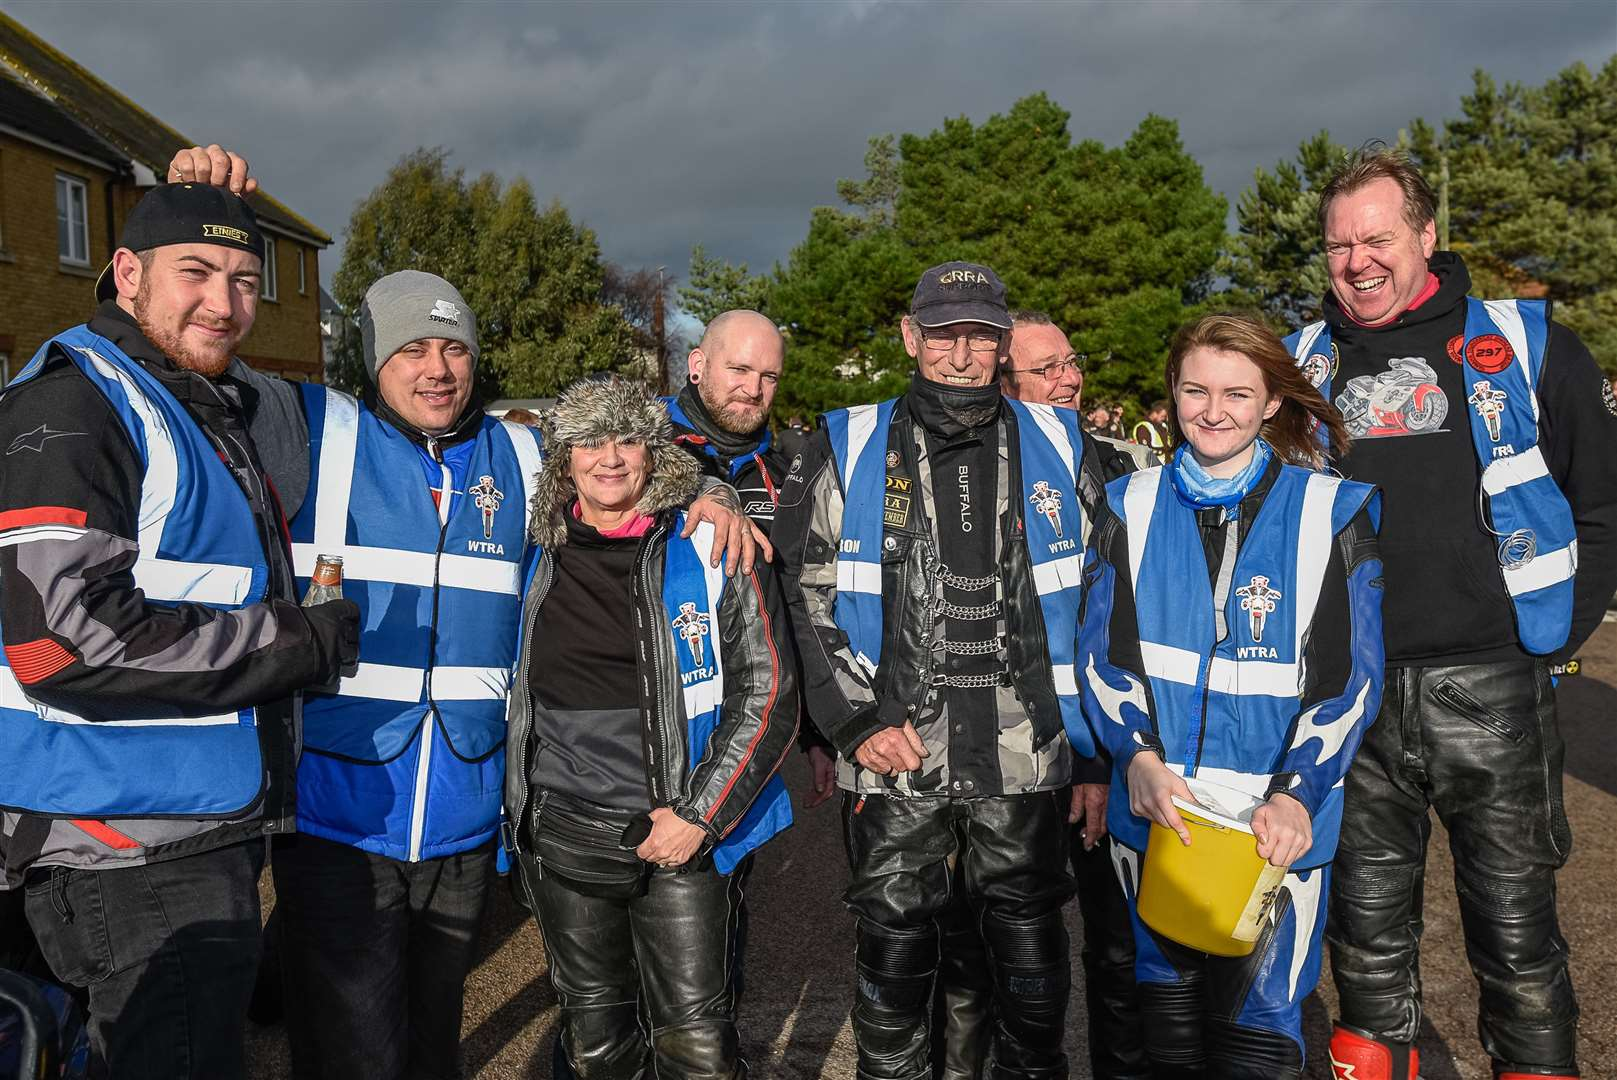 Whitstable Toy Run organisers, pictured in 2018. Picture: Alan Langley